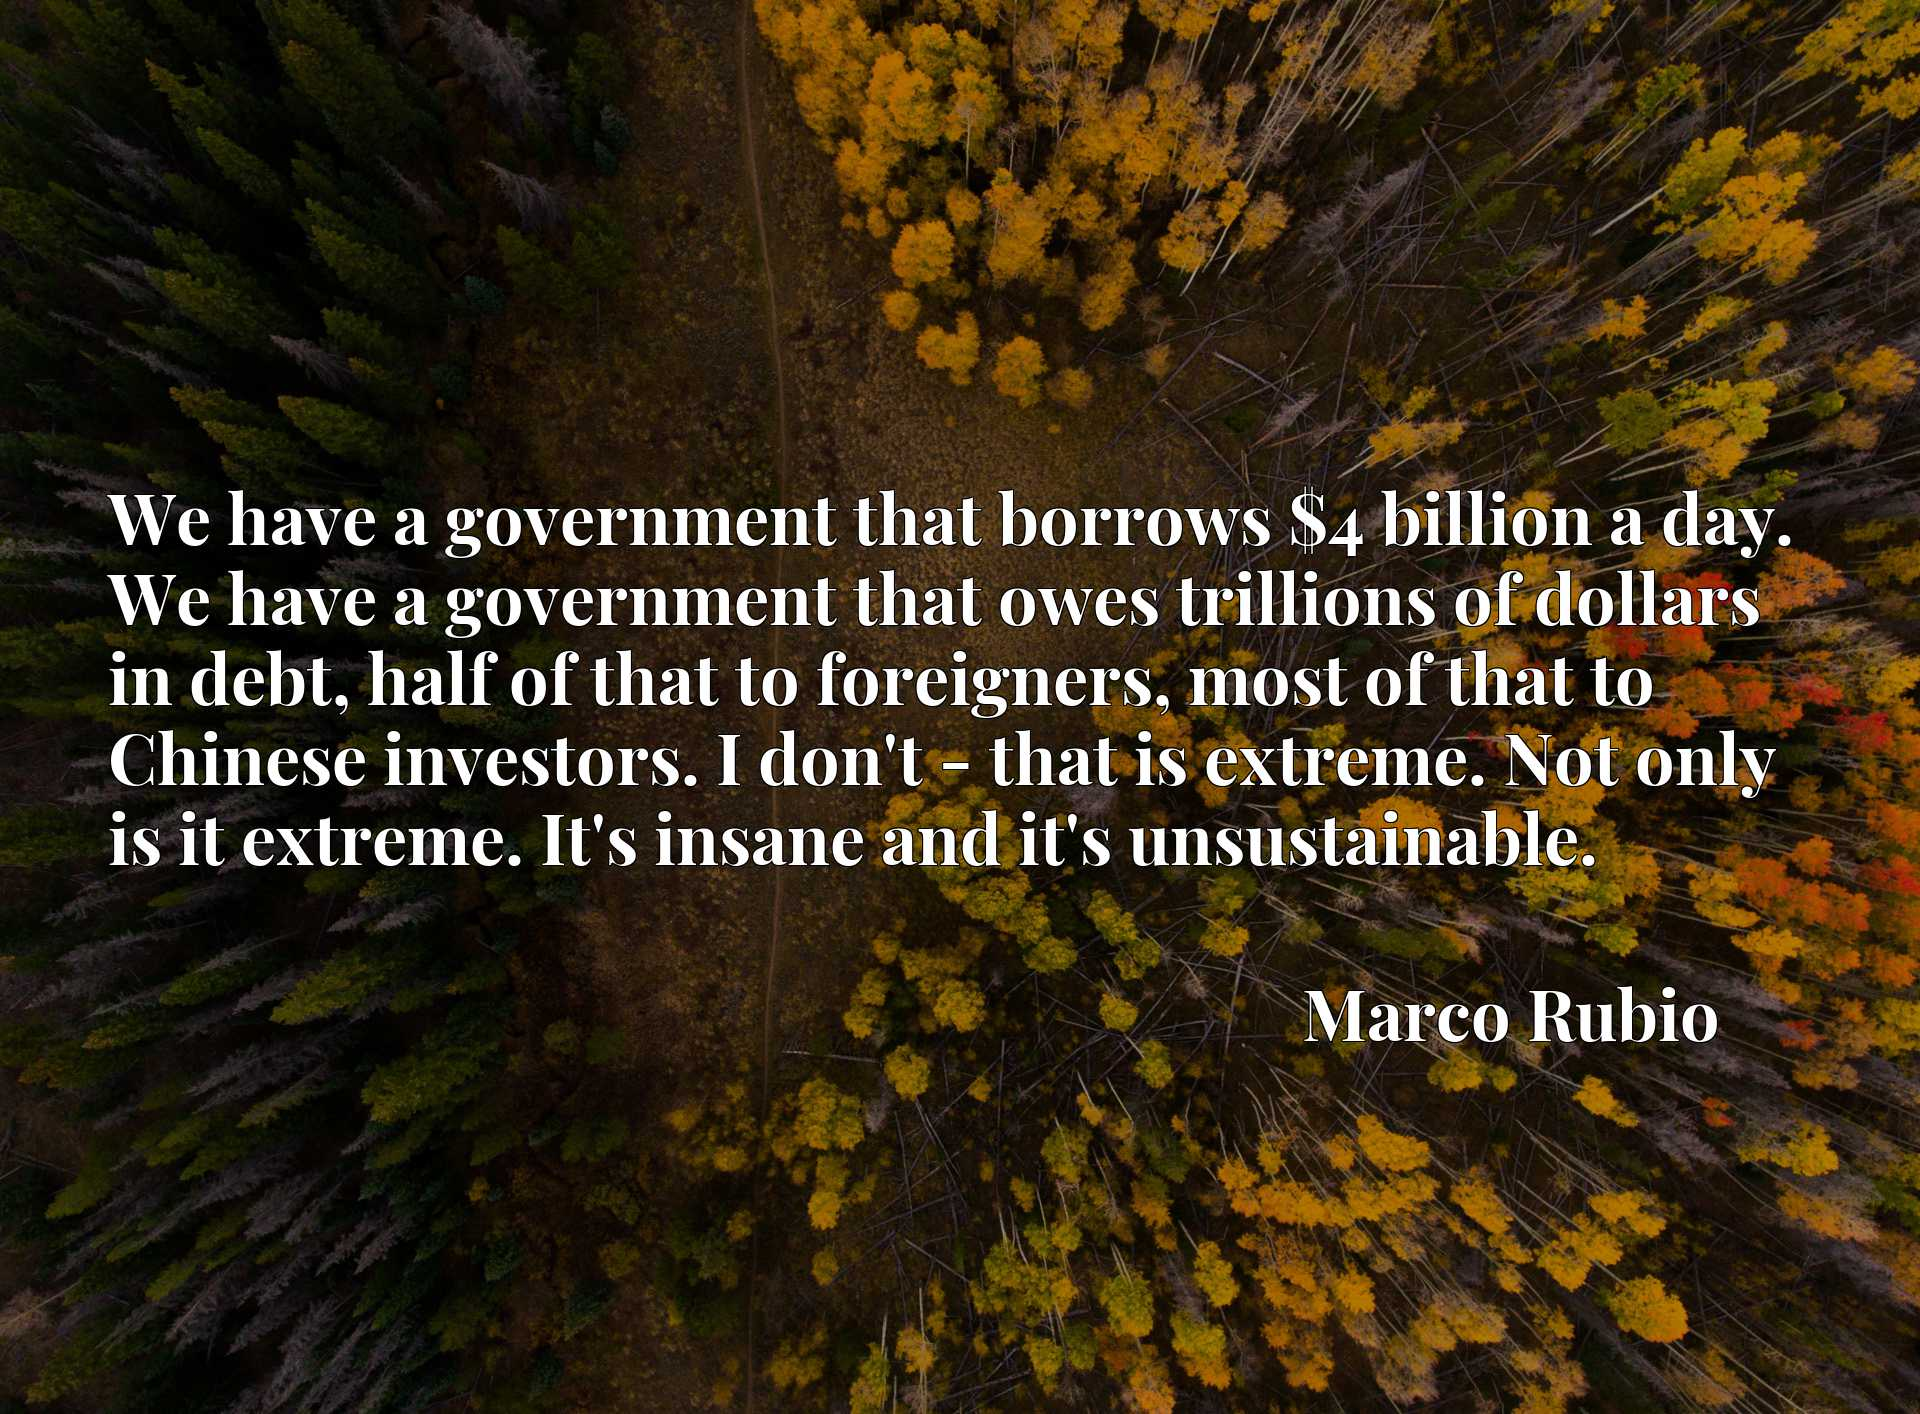 We have a government that borrows $4 billion a day. We have a government that owes trillions of dollars in debt, half of that to foreigners, most of that to Chinese investors. I don't - that is extreme. Not only is it extreme. It's insane and it's unsustainable.